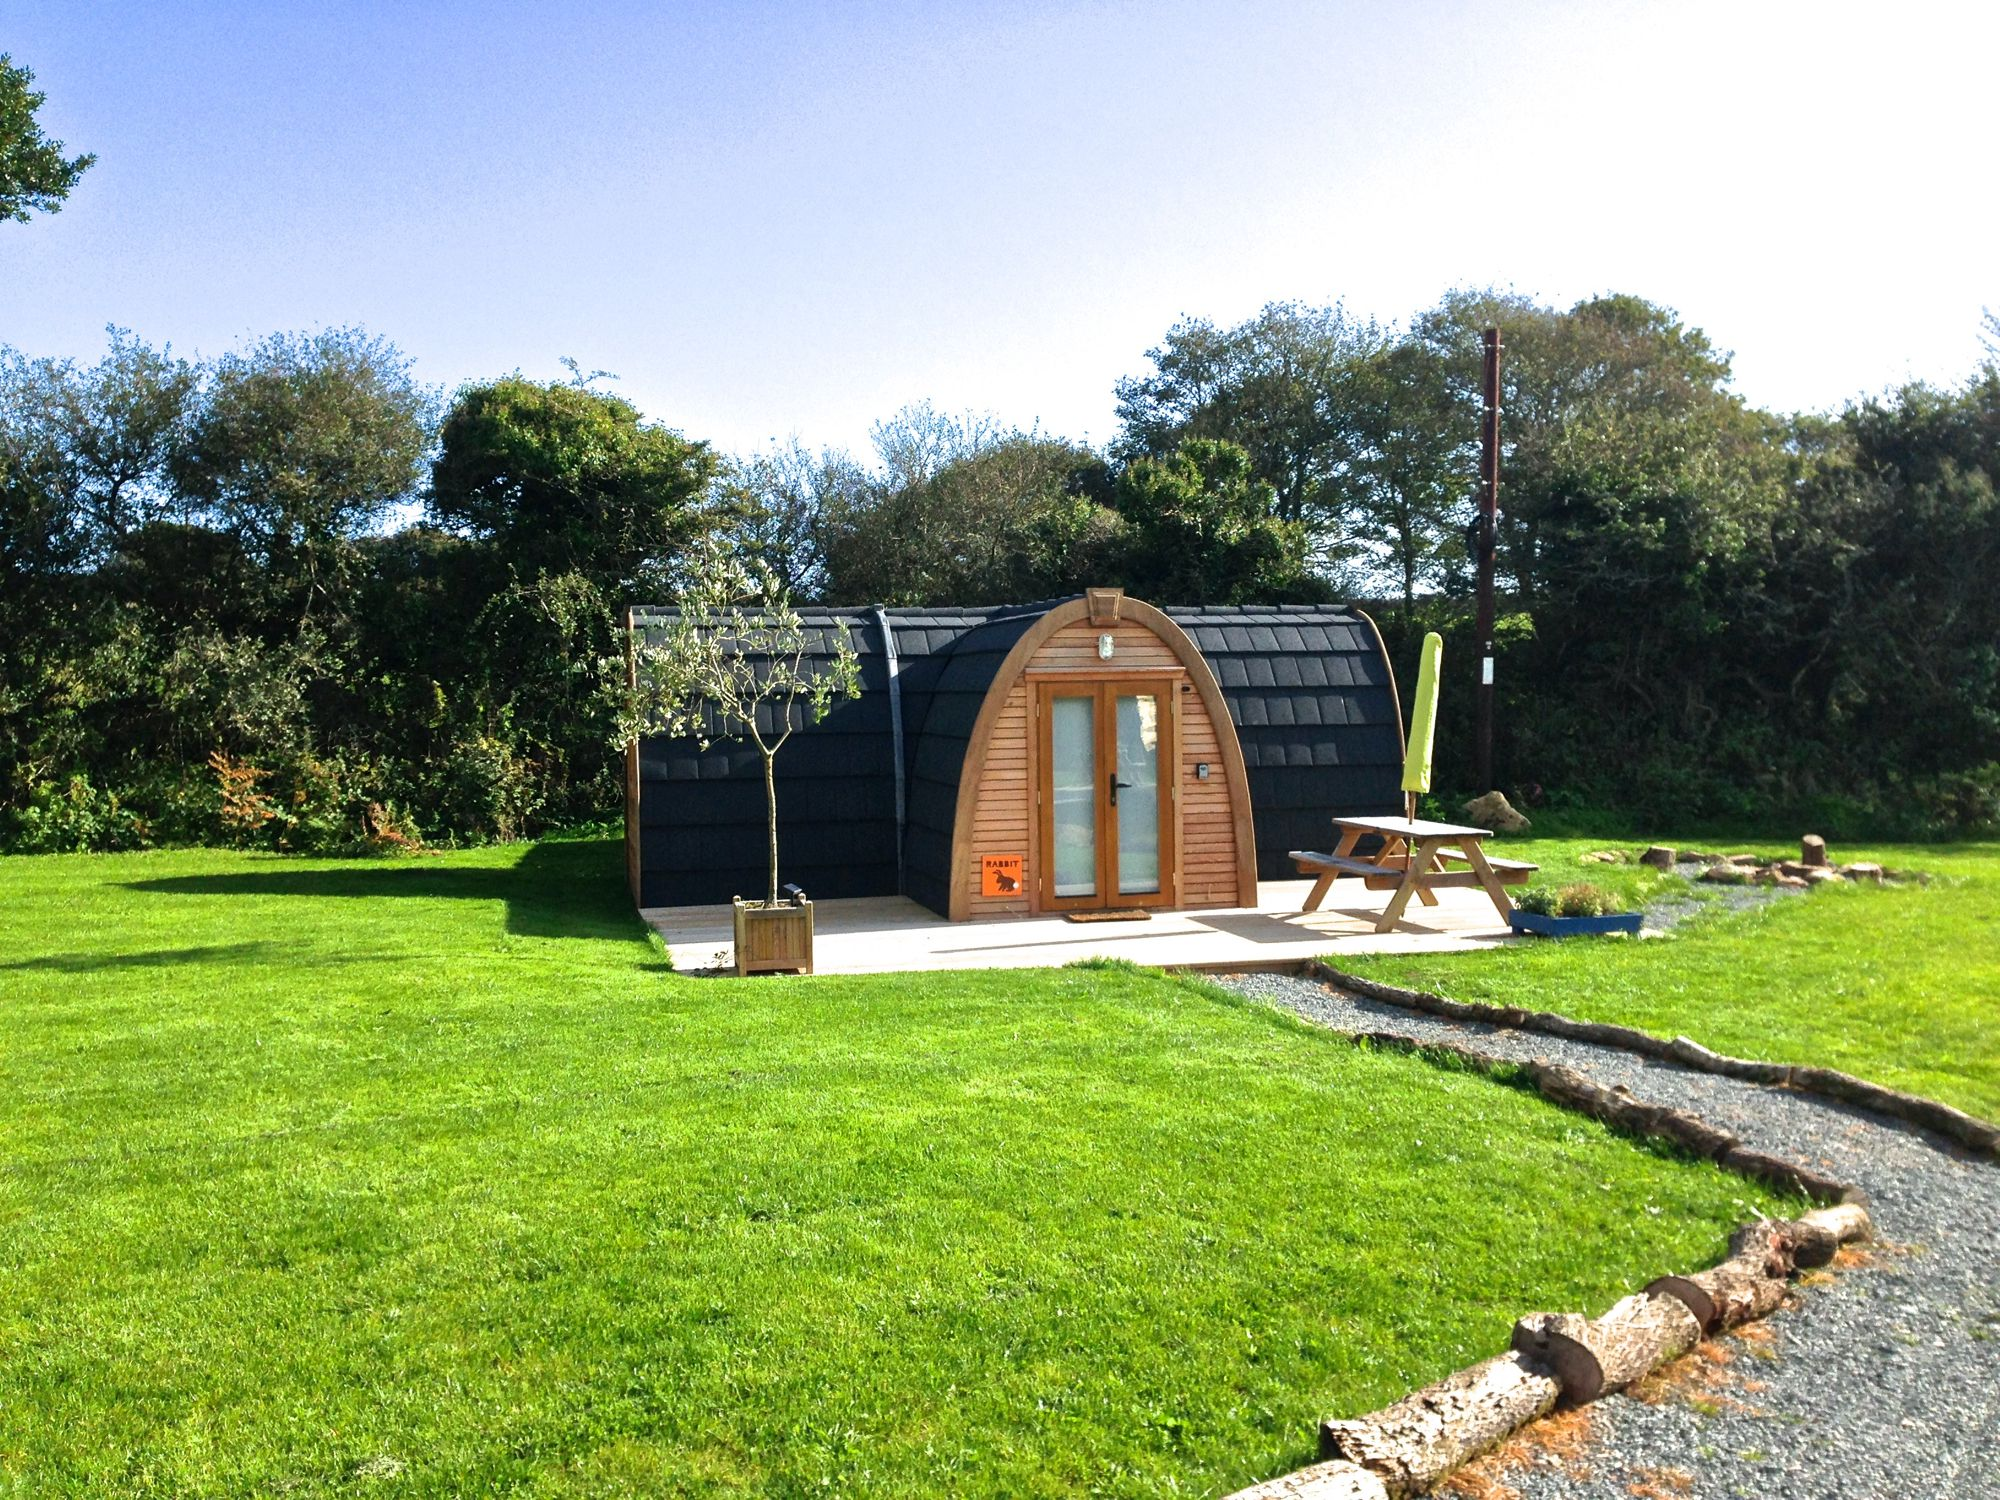 Kid-friendly and hassle-free – lakeside glamping just a stone's throw from Falmouth.